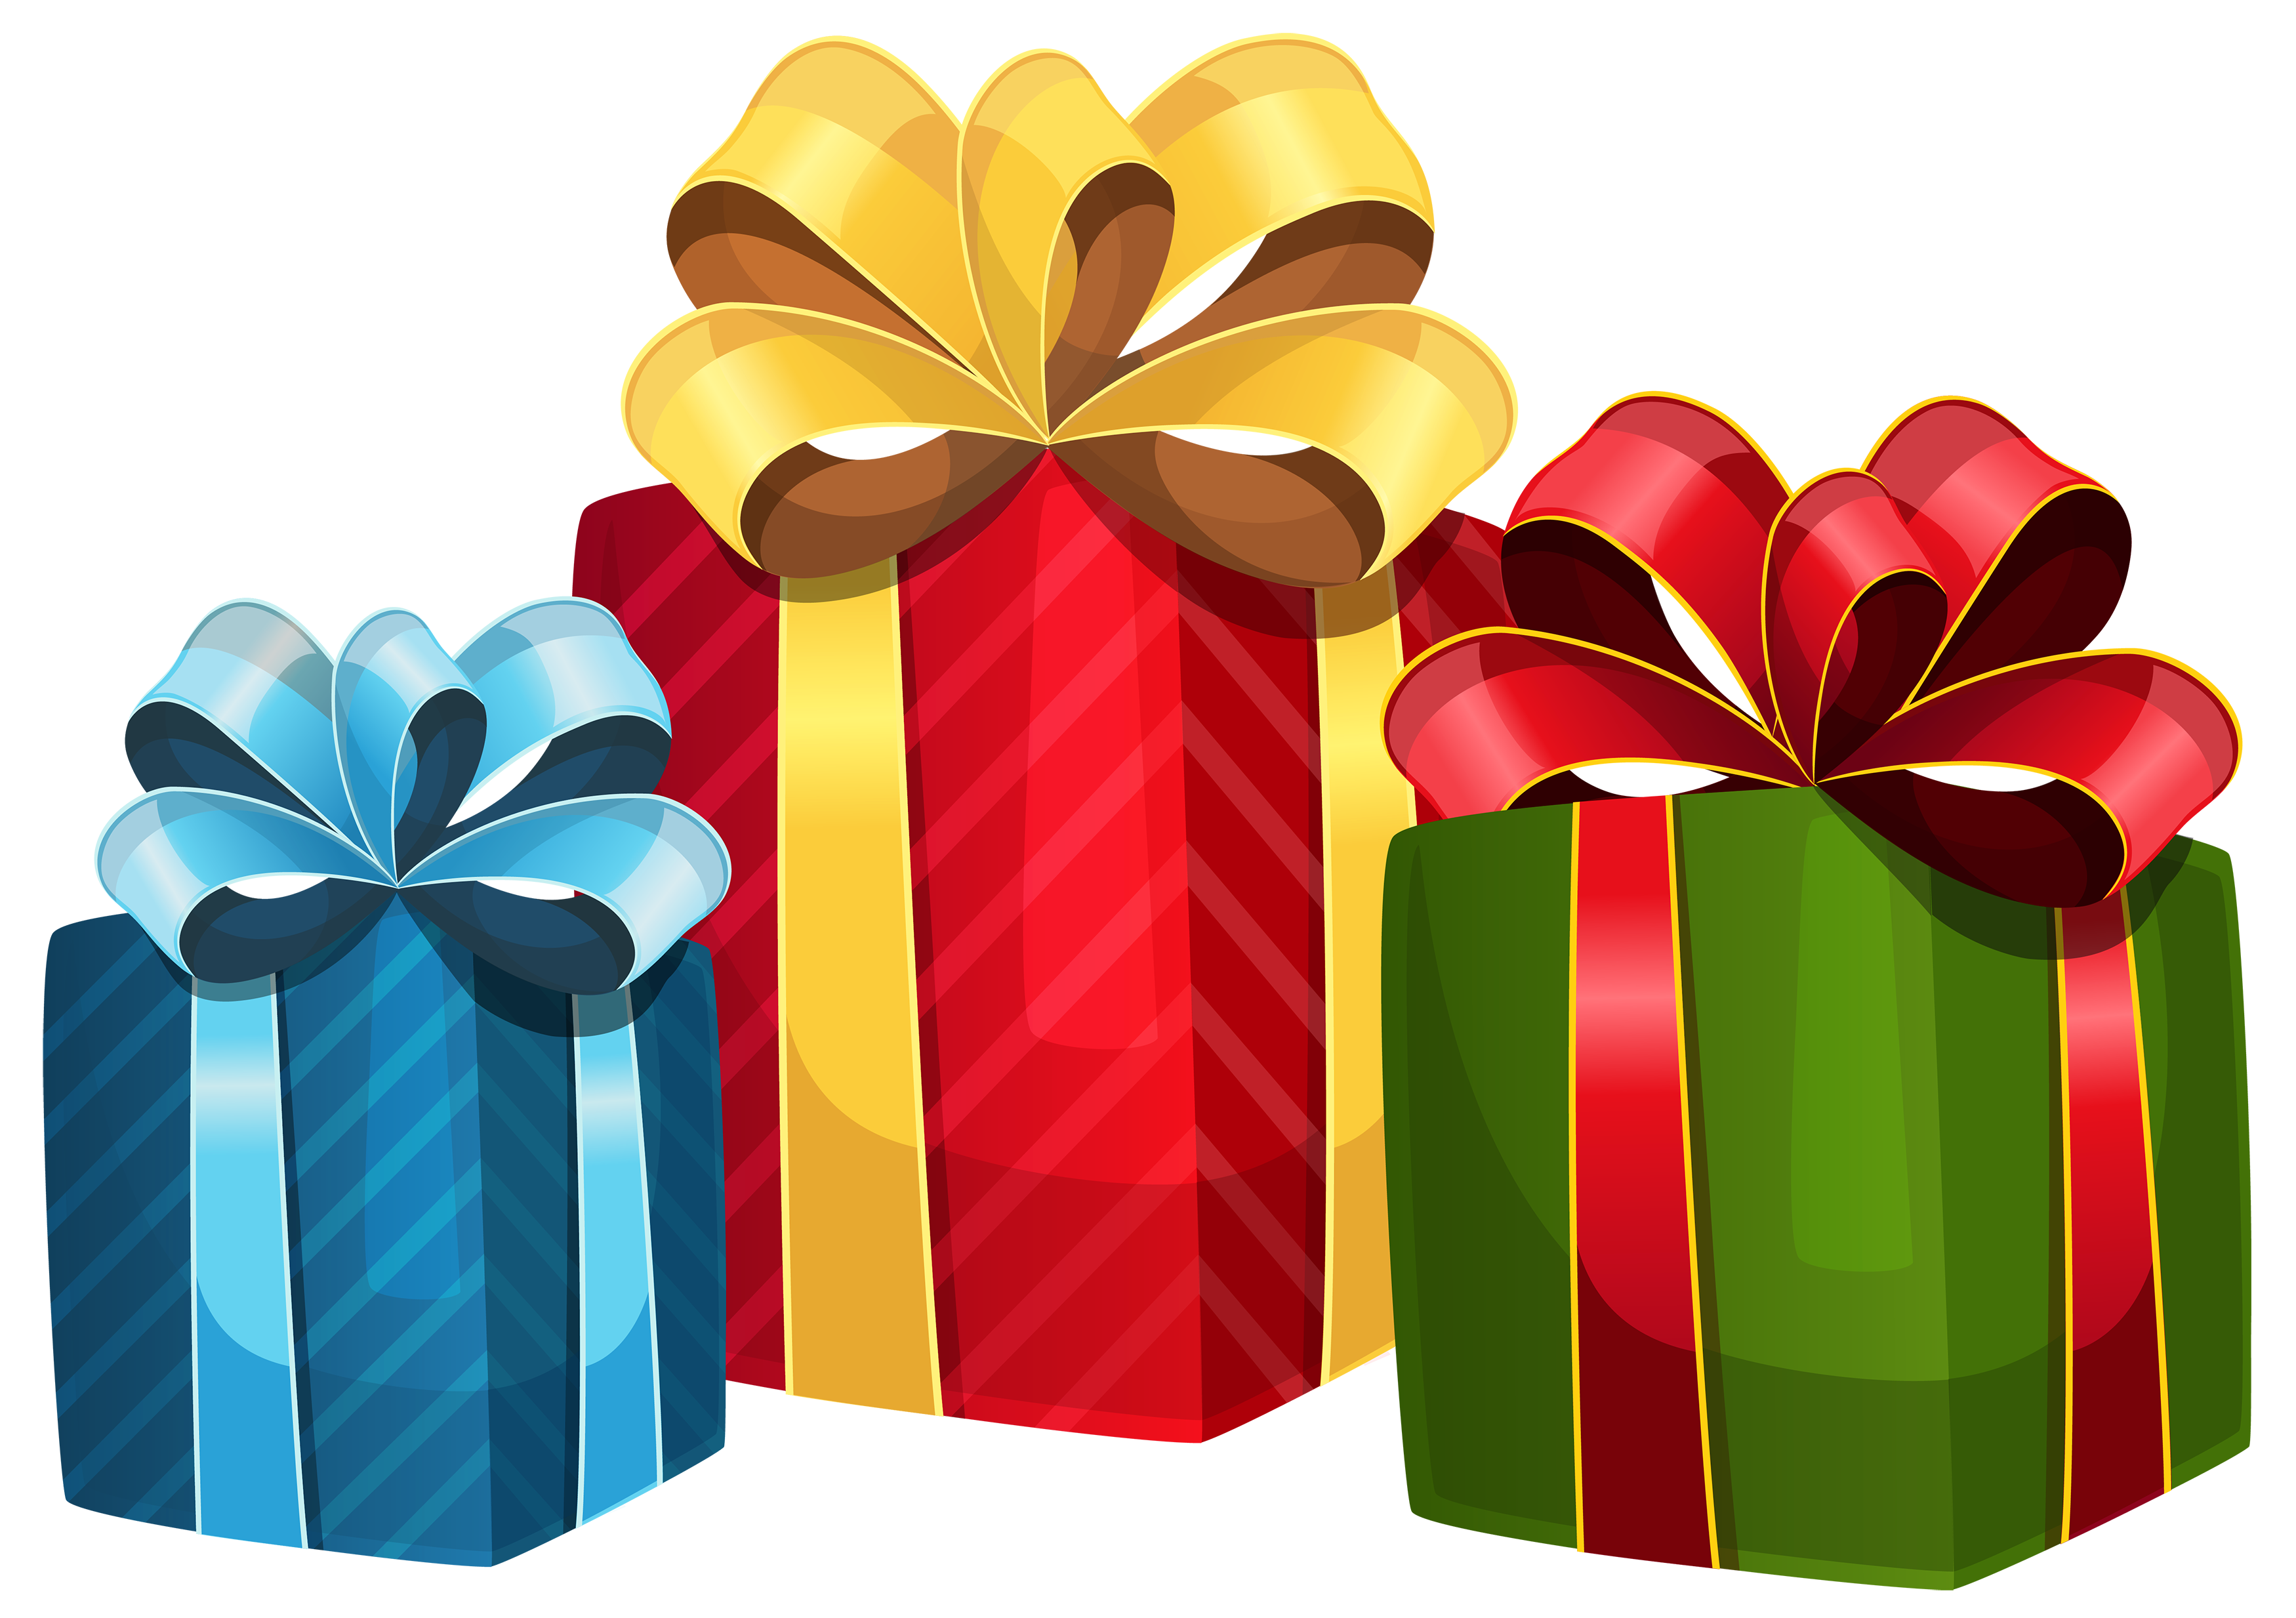 svg library Gifts clipart. Colorful gift boxes png.